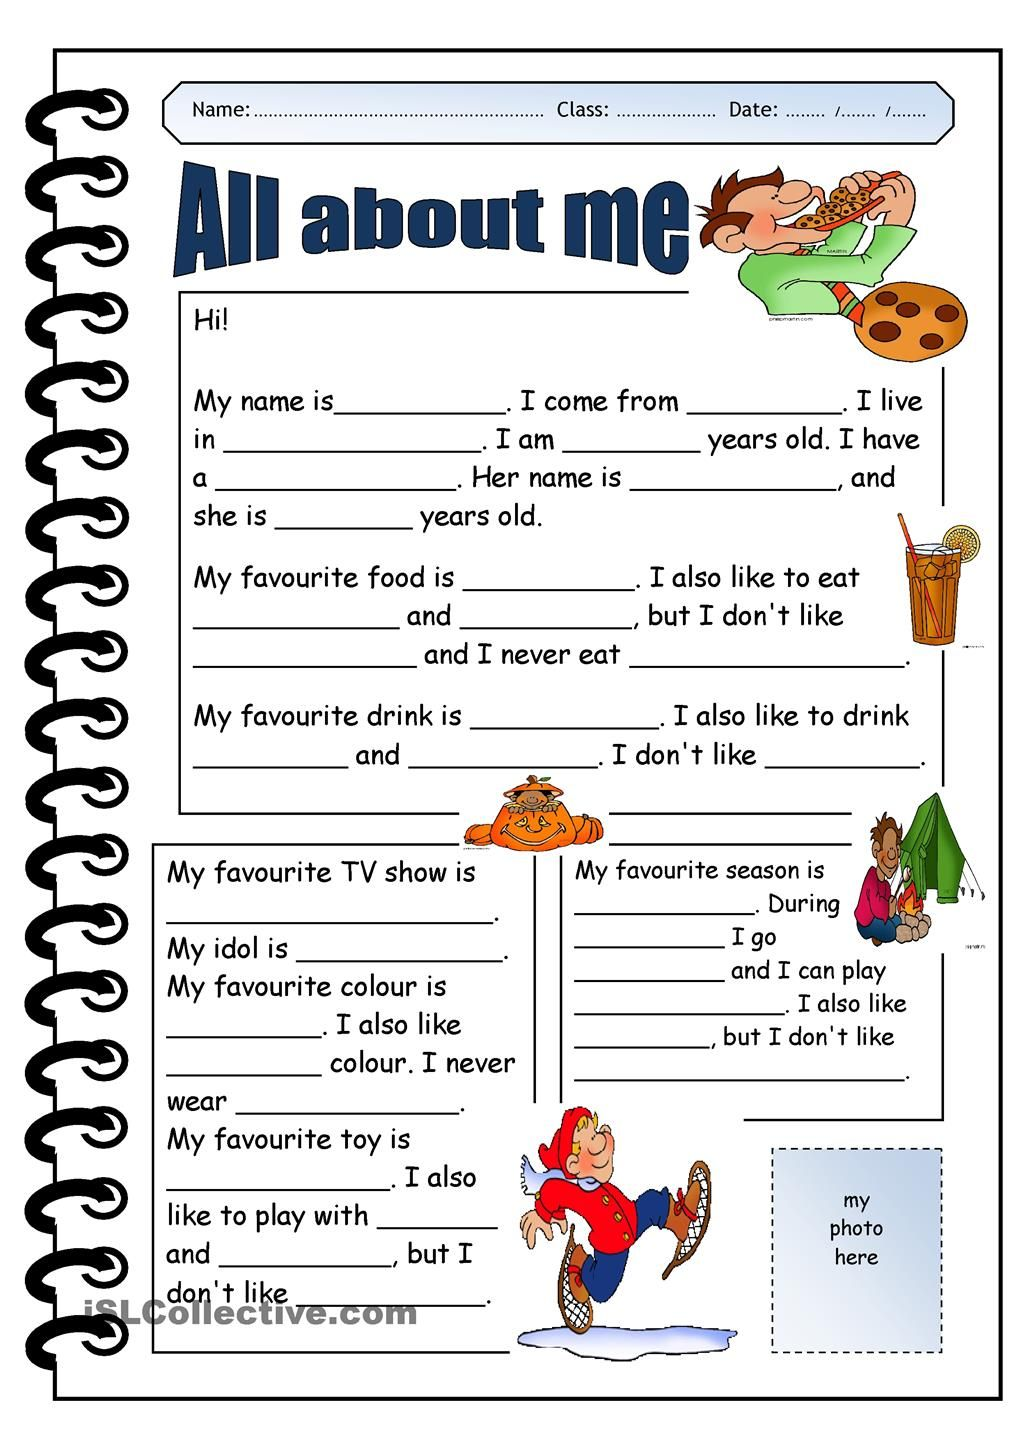 all about me printable worksheets Google Search